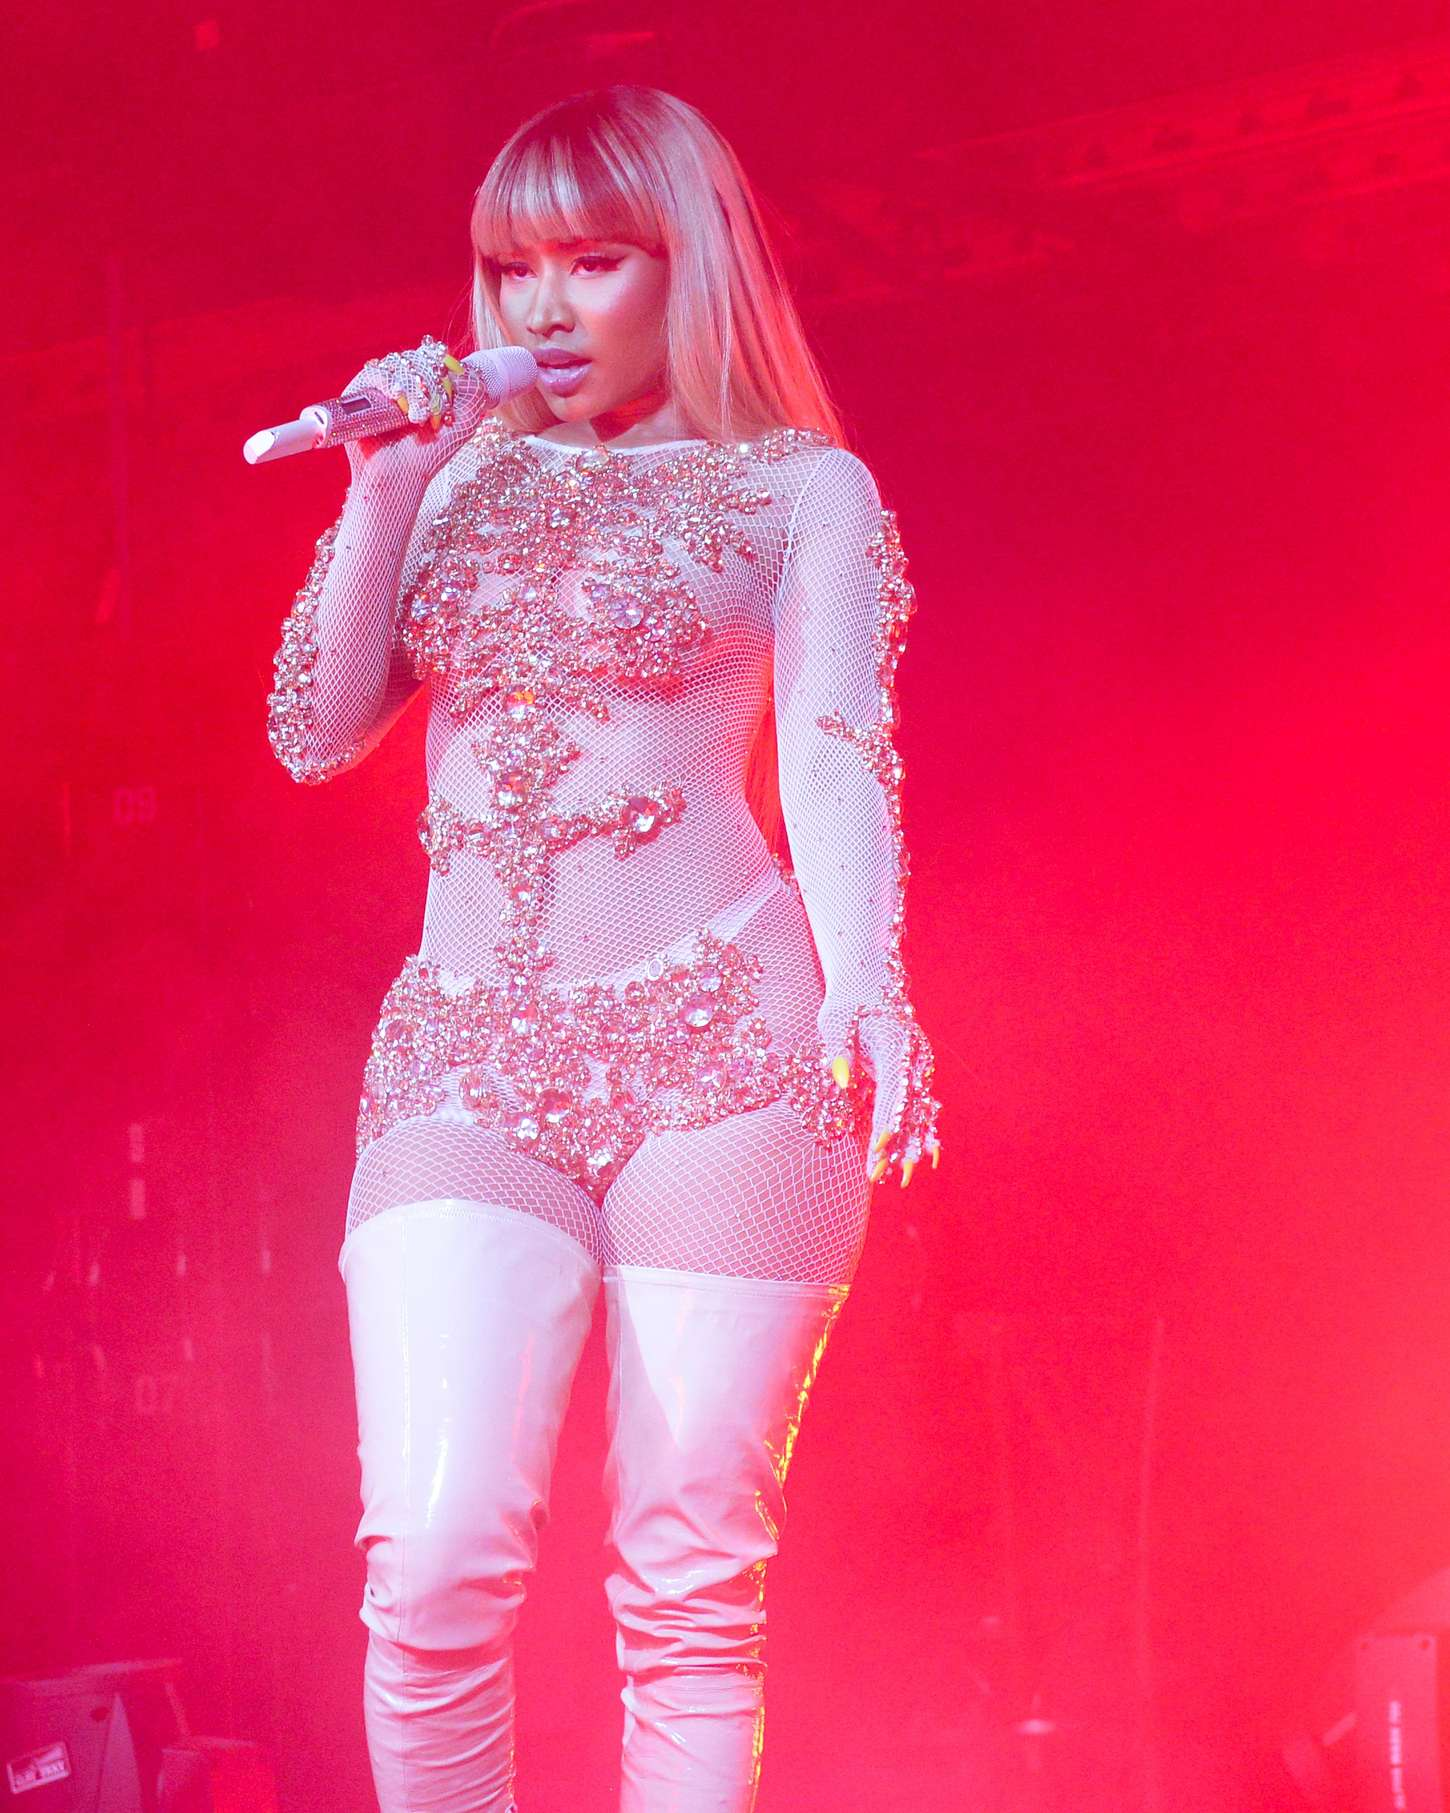 Nicki minaj preforming at the givenchy party at mfw 2016 25 gotceleb Nicki minaj fashion style 2016